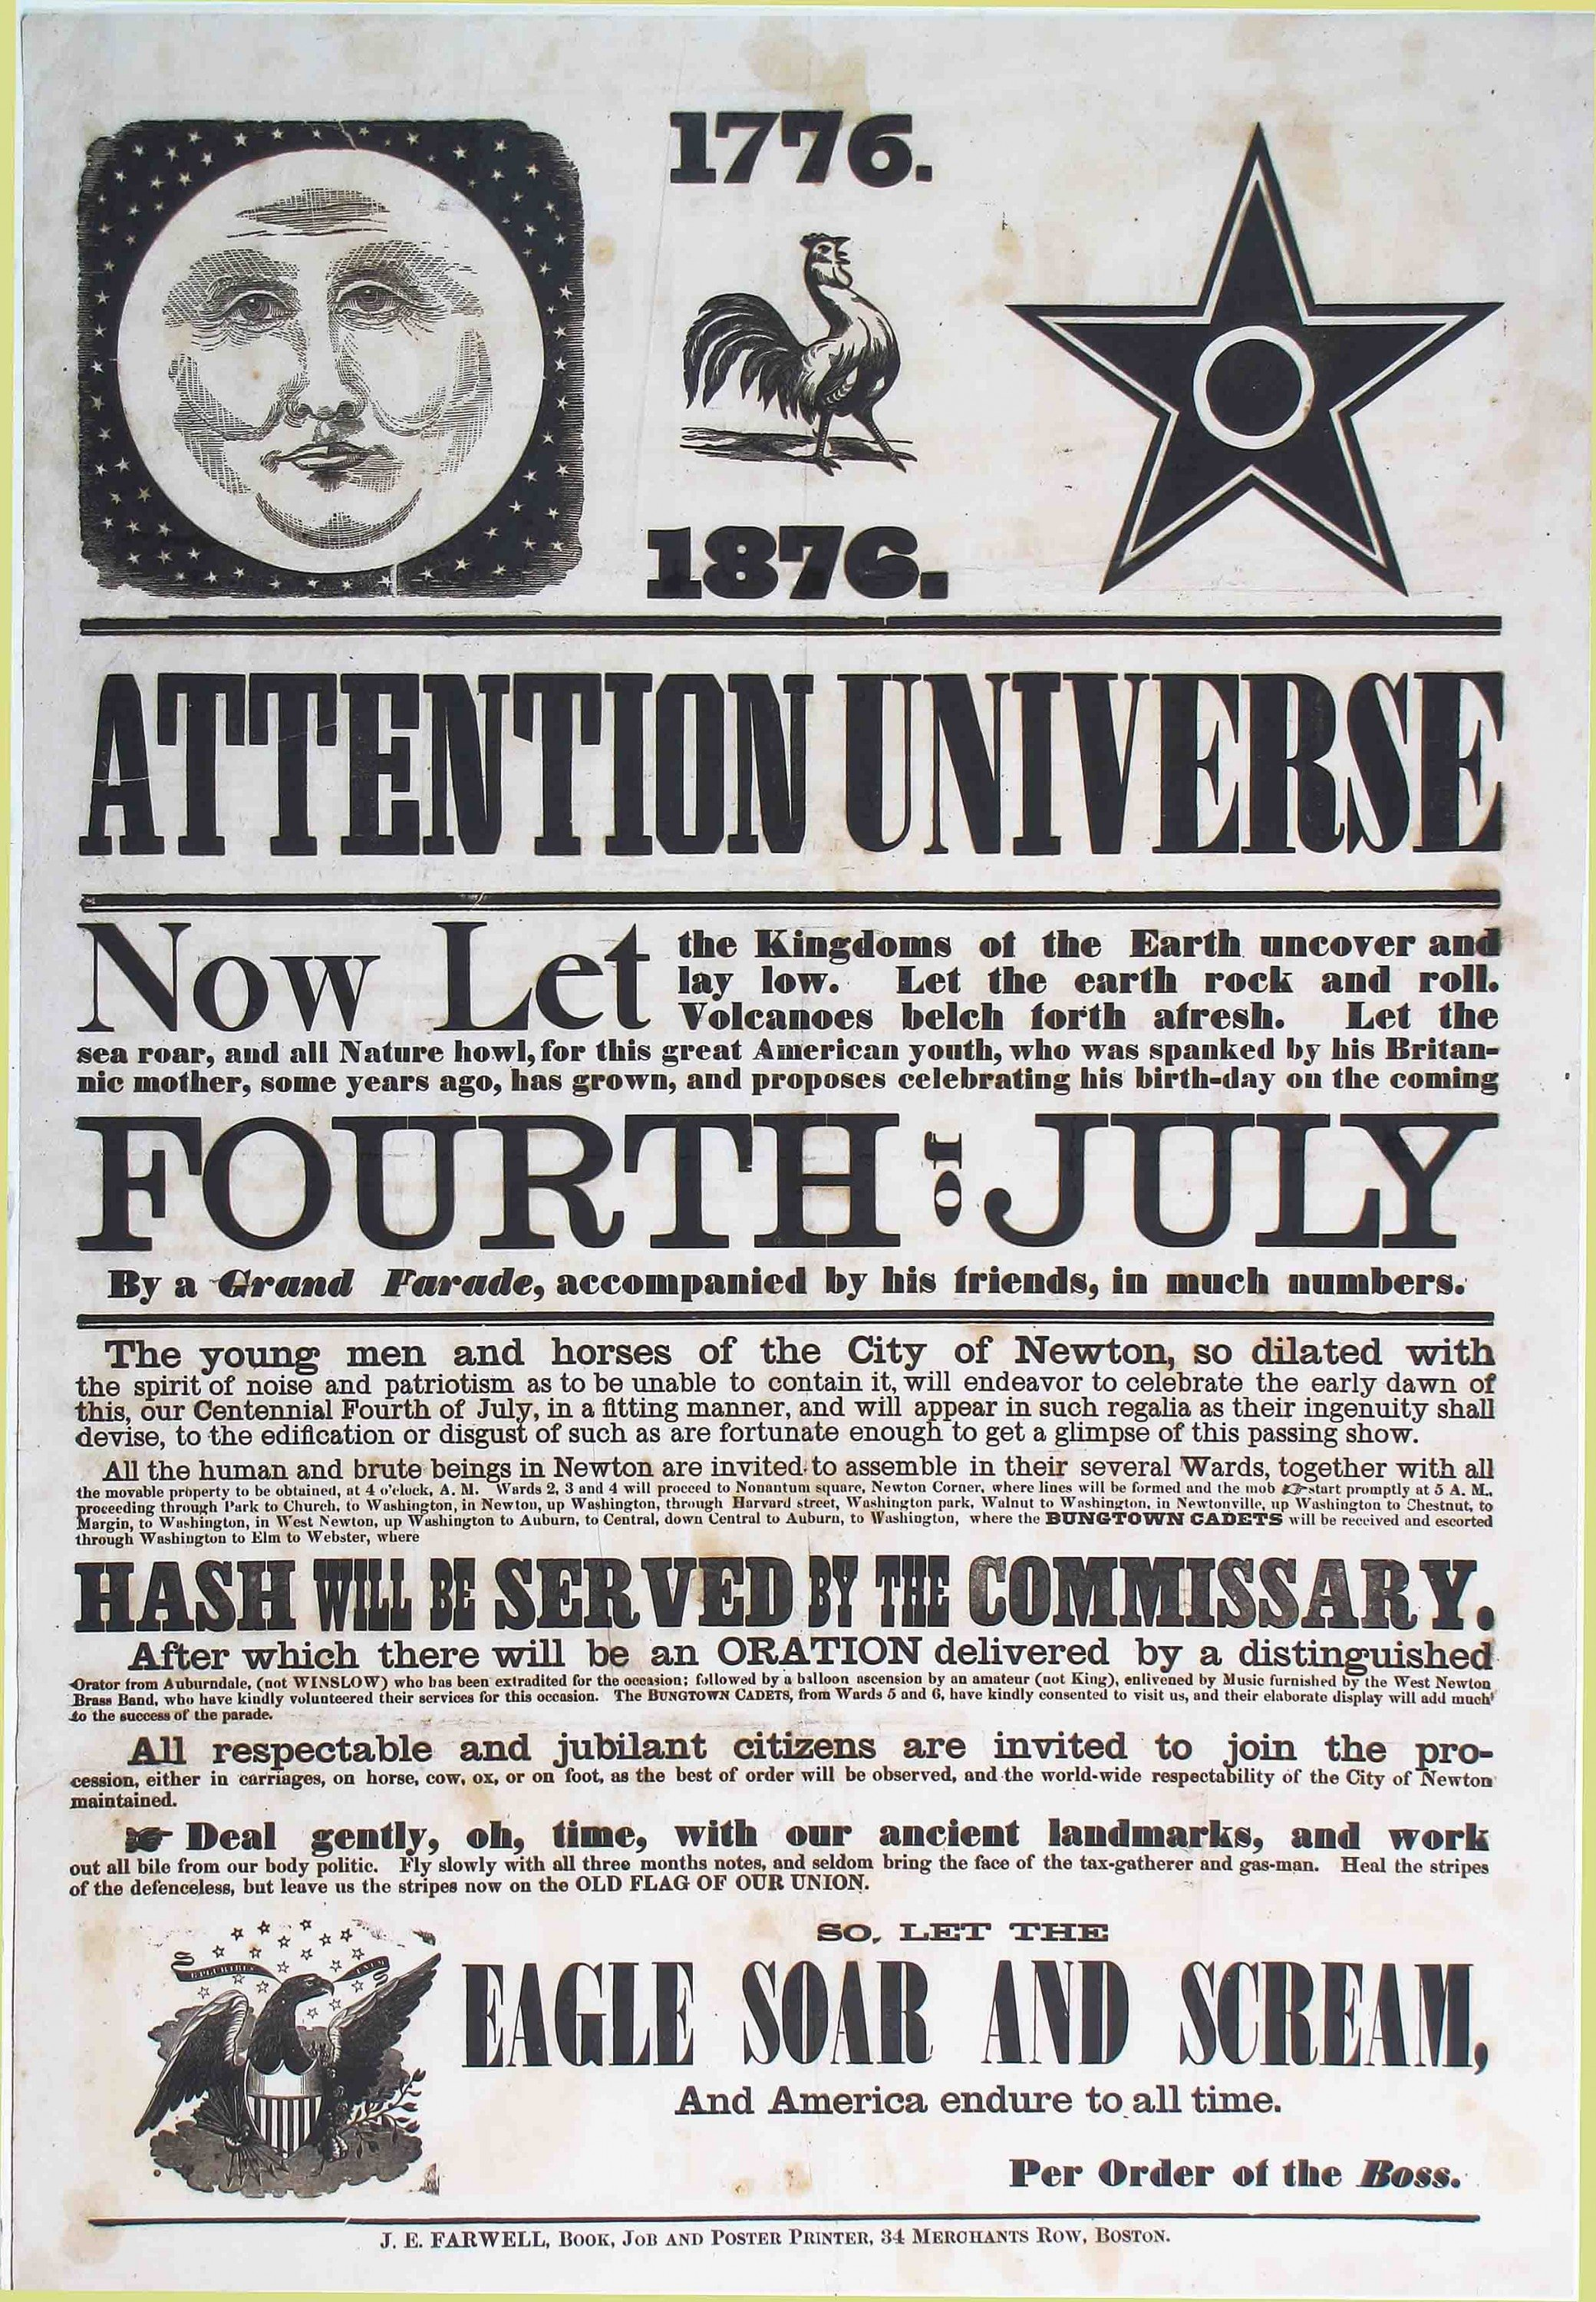 Attention Universe!